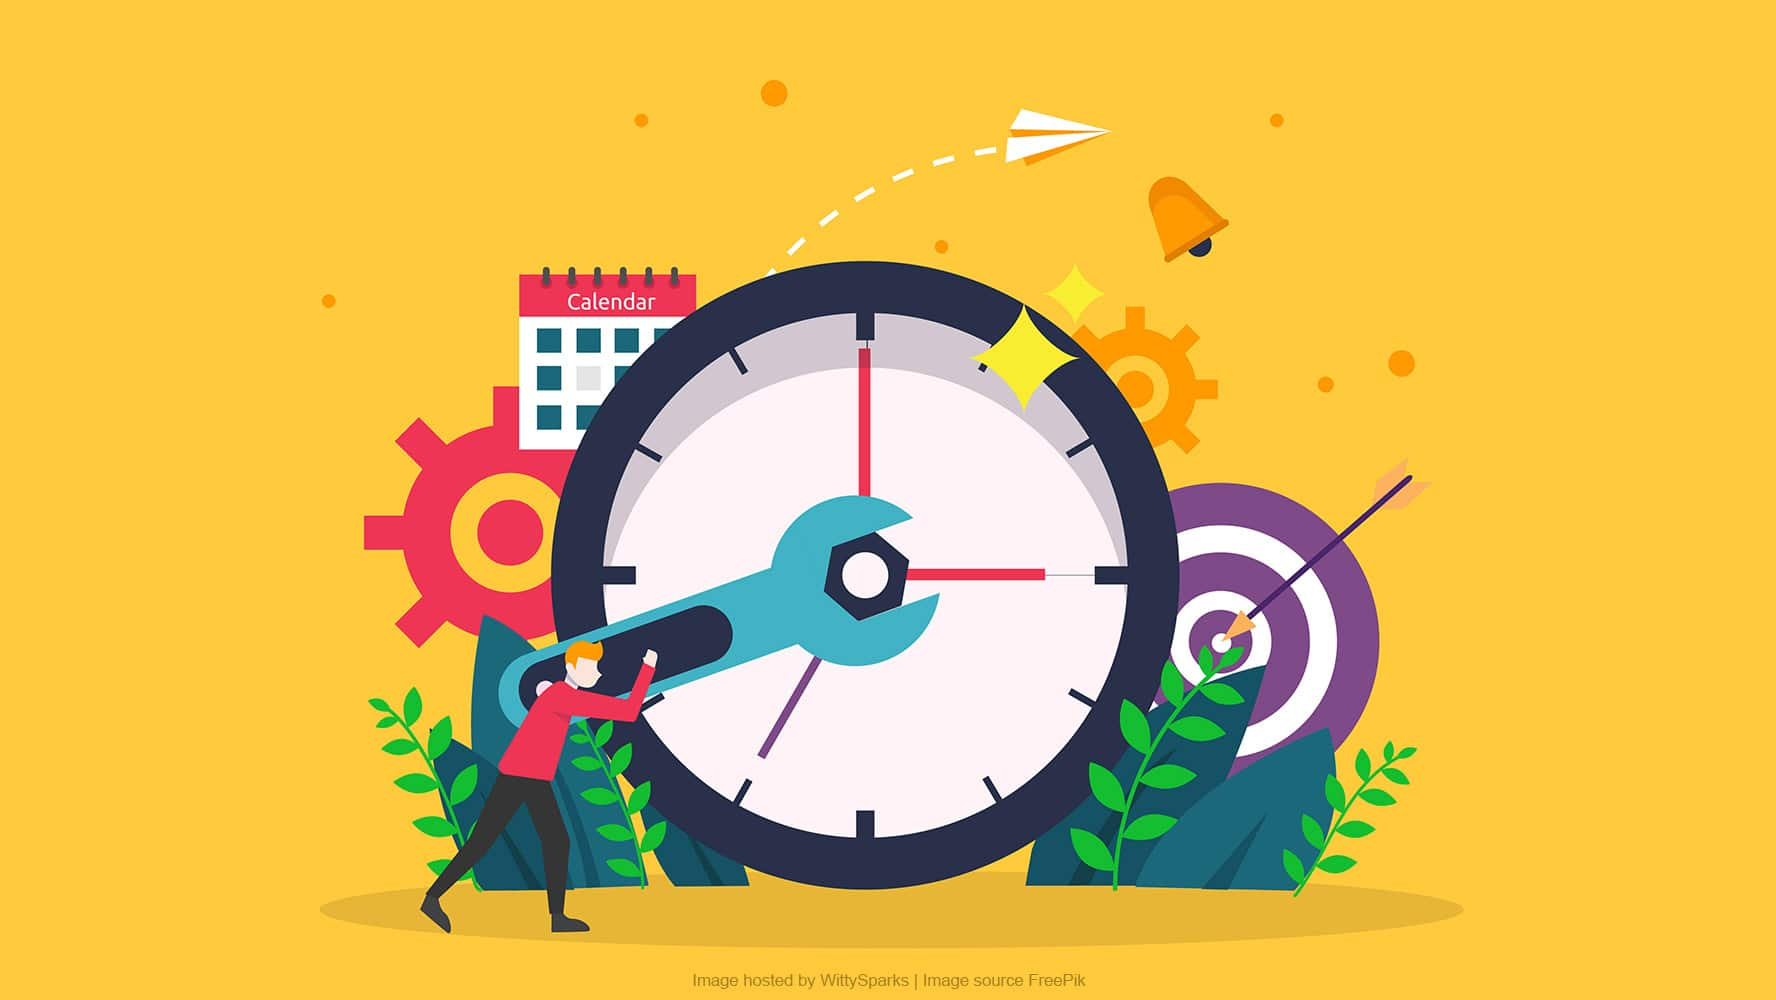 Time management procrastination concept and planning strategy business